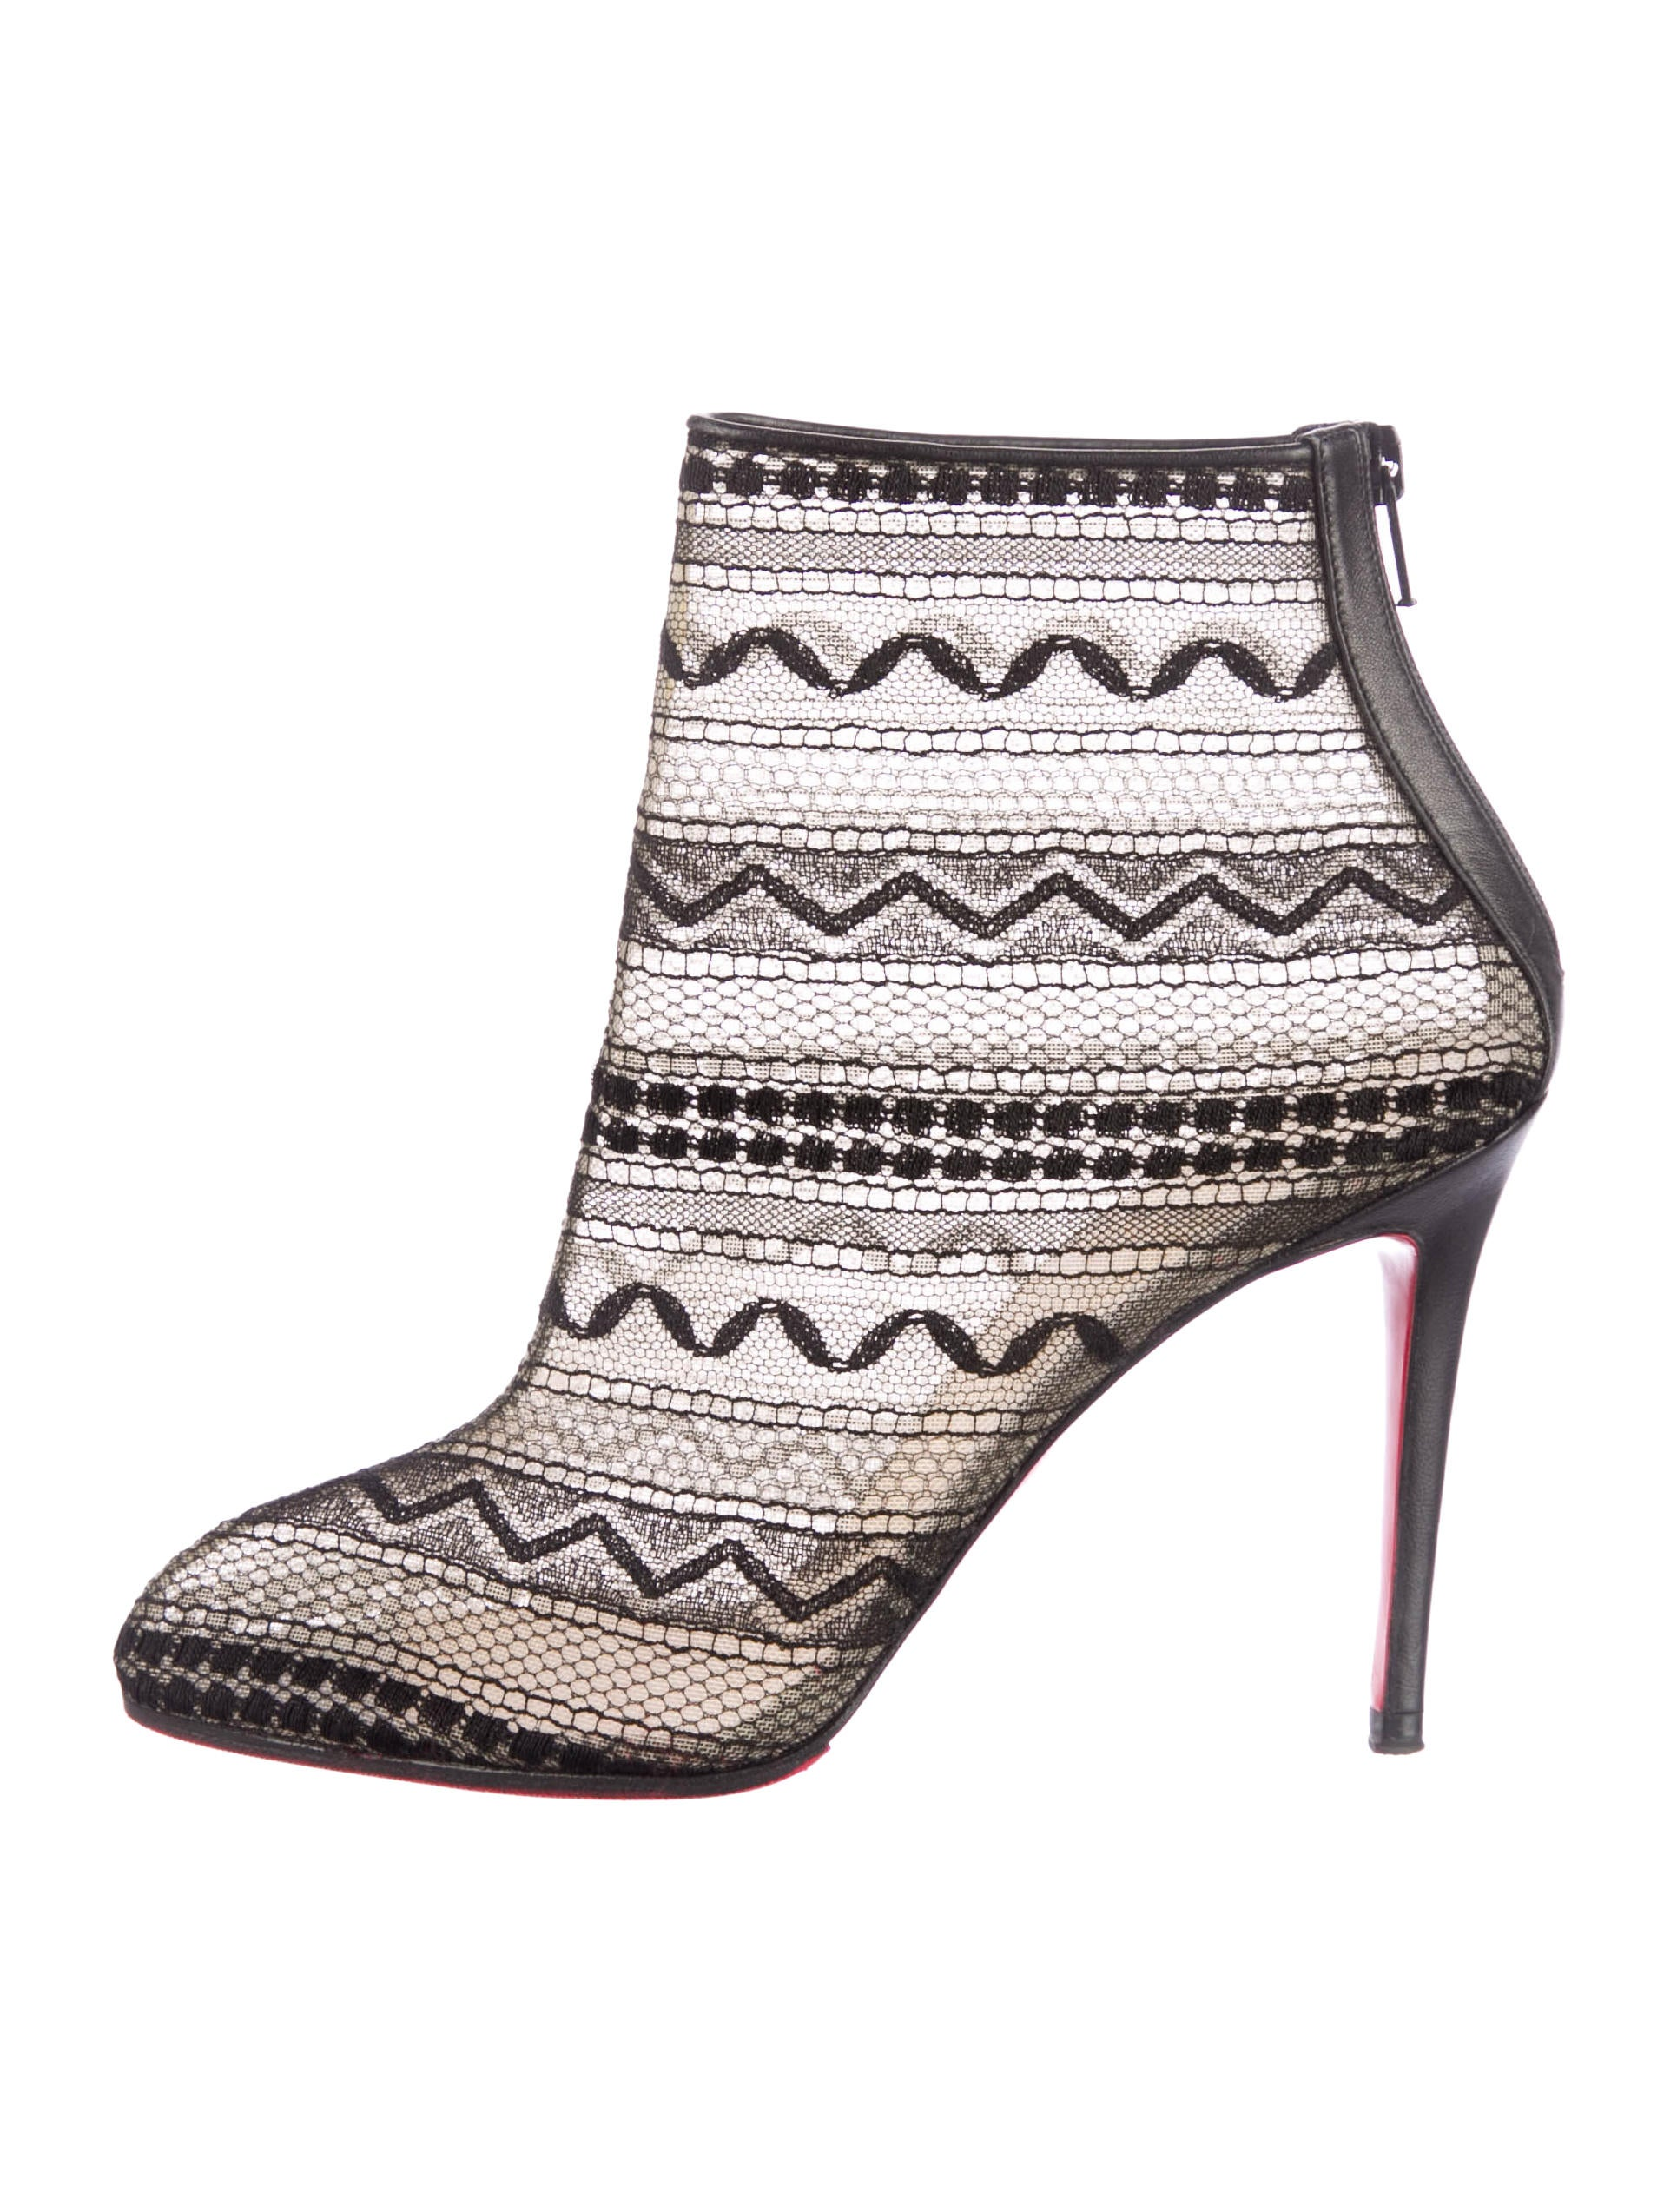 christian louboutin Paola Booty mesh ankle boots Black pointed ...